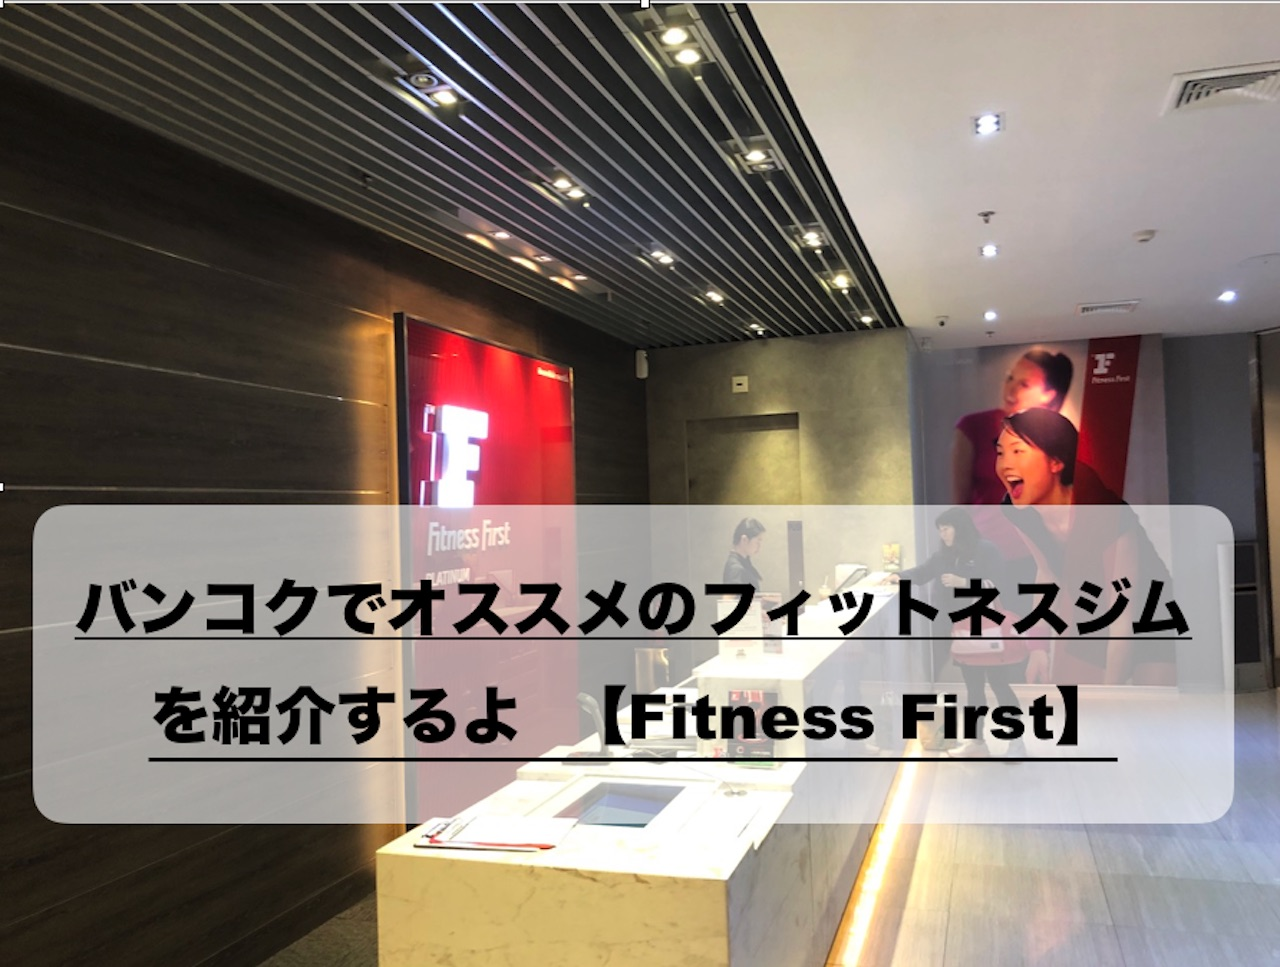 Fitness_first_0000